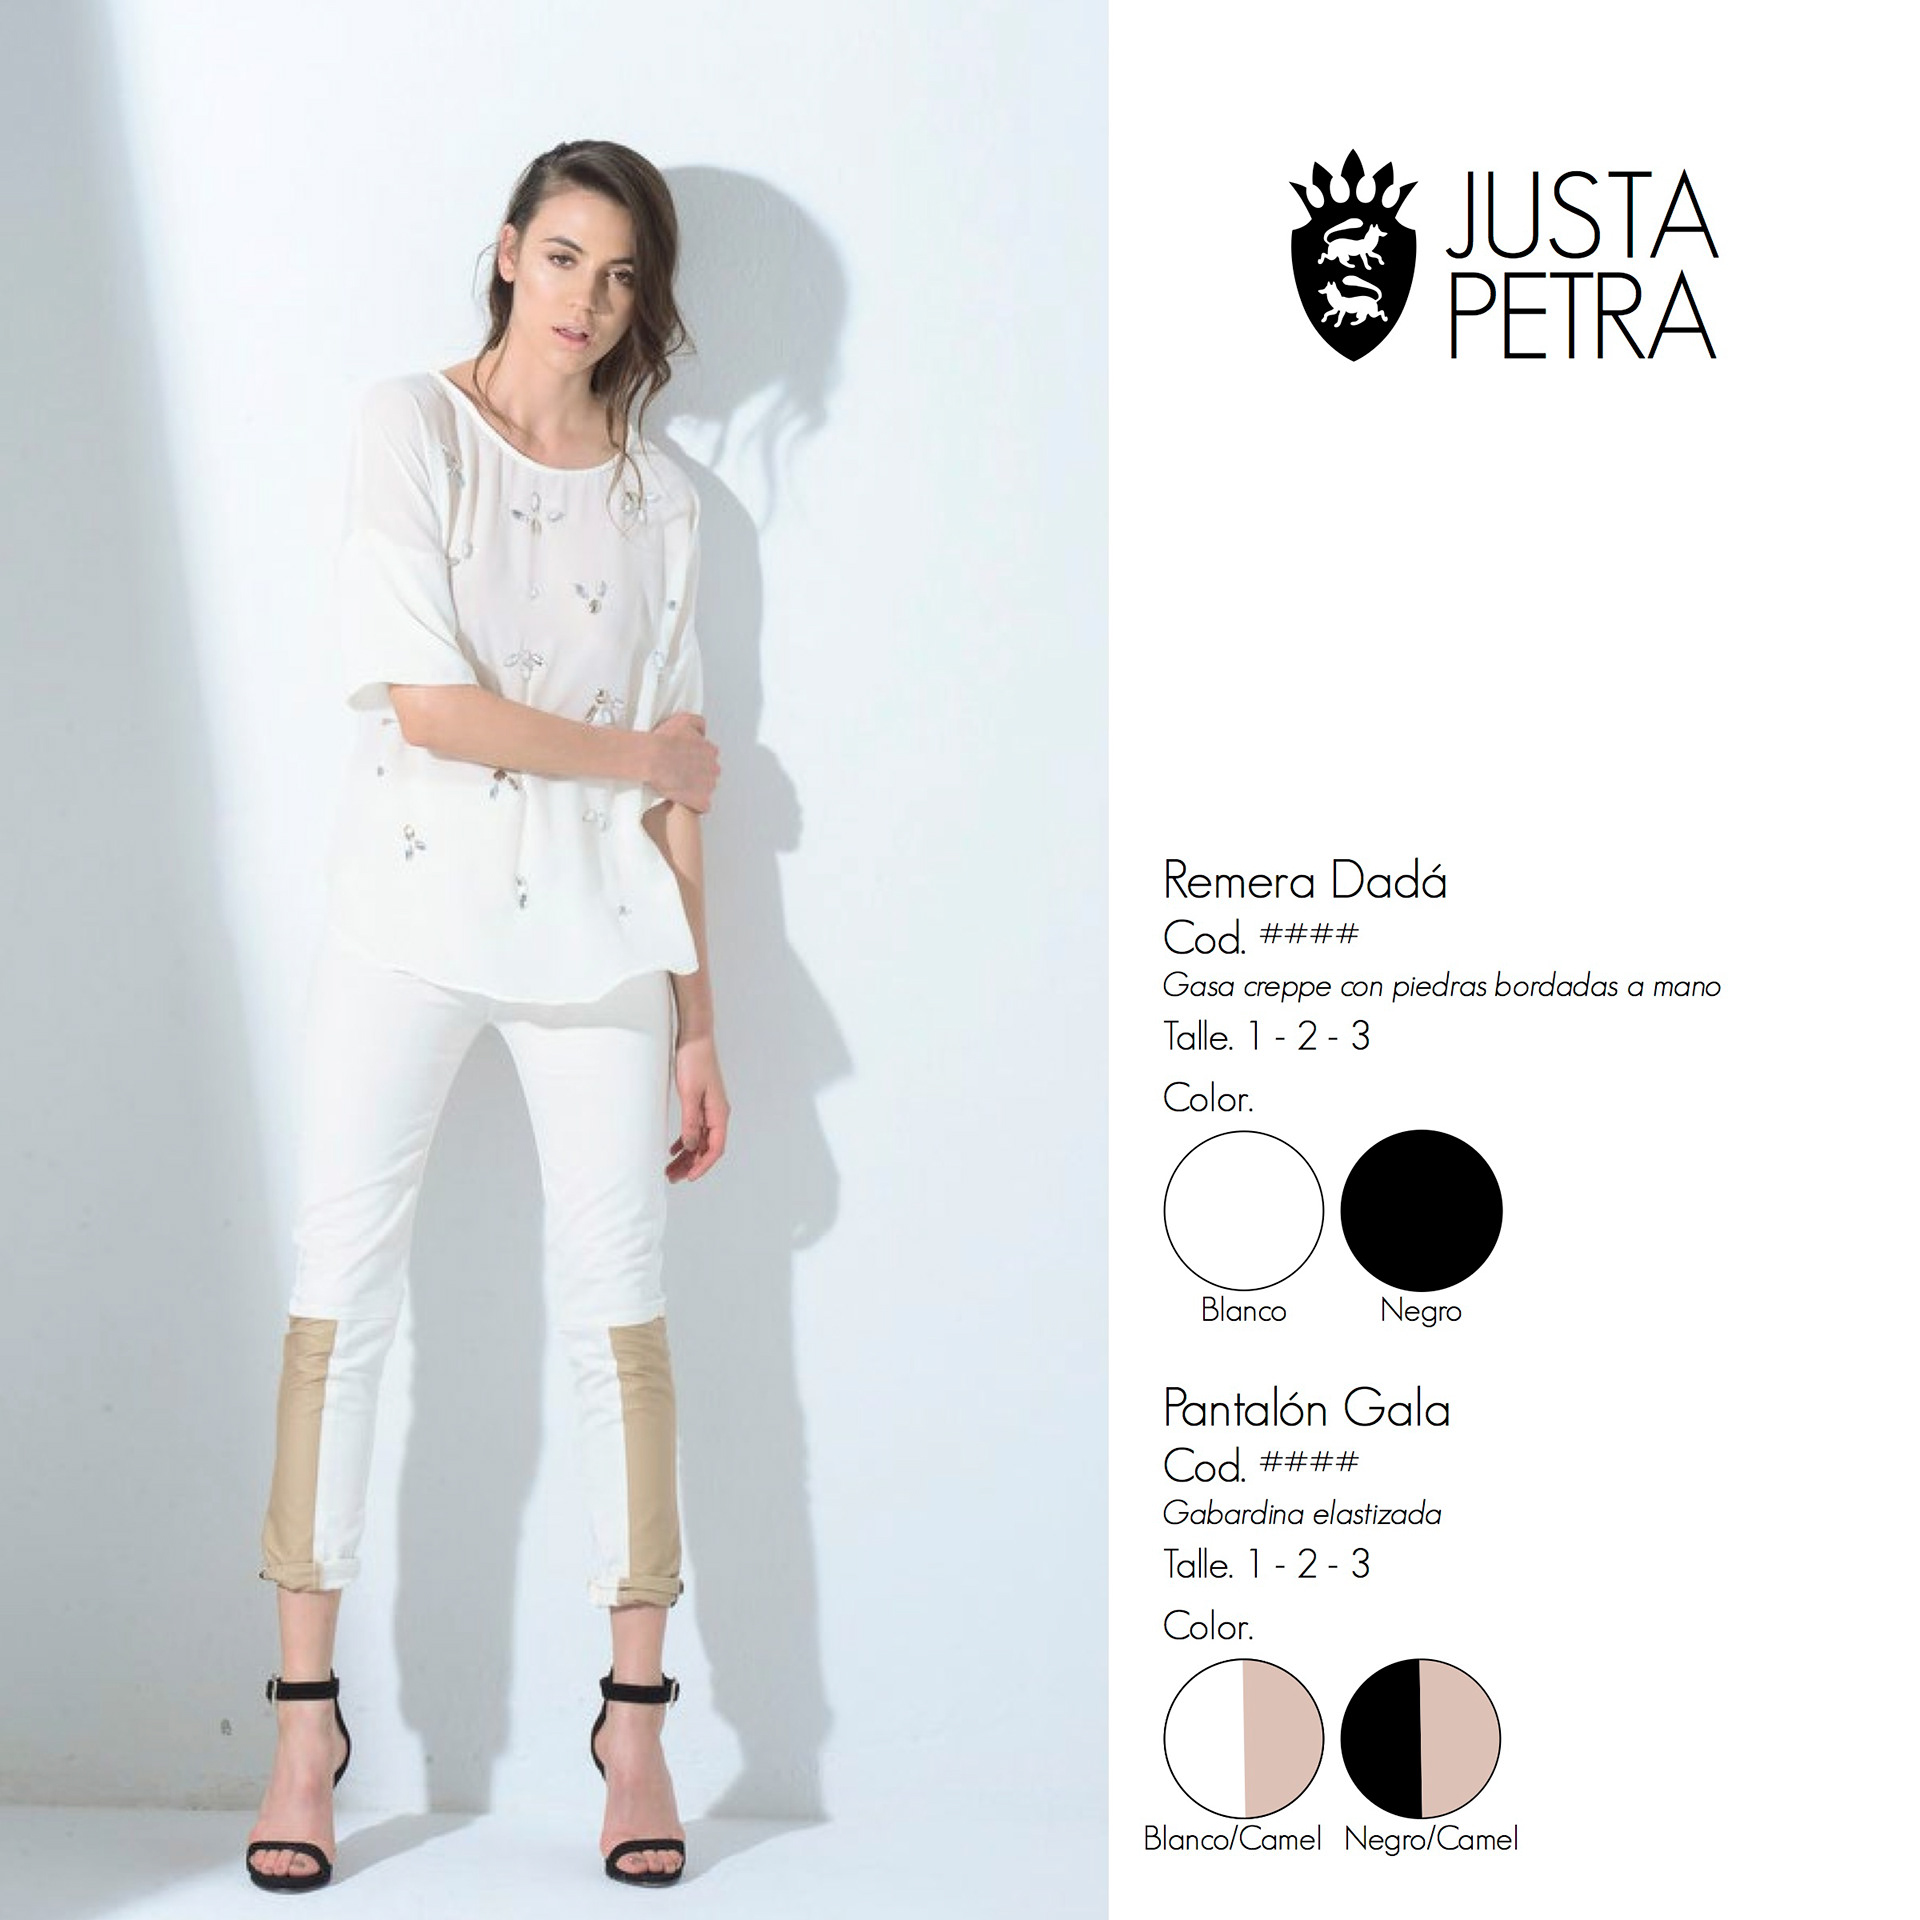 Petra fashions consultant fashion today Fashion design consultant